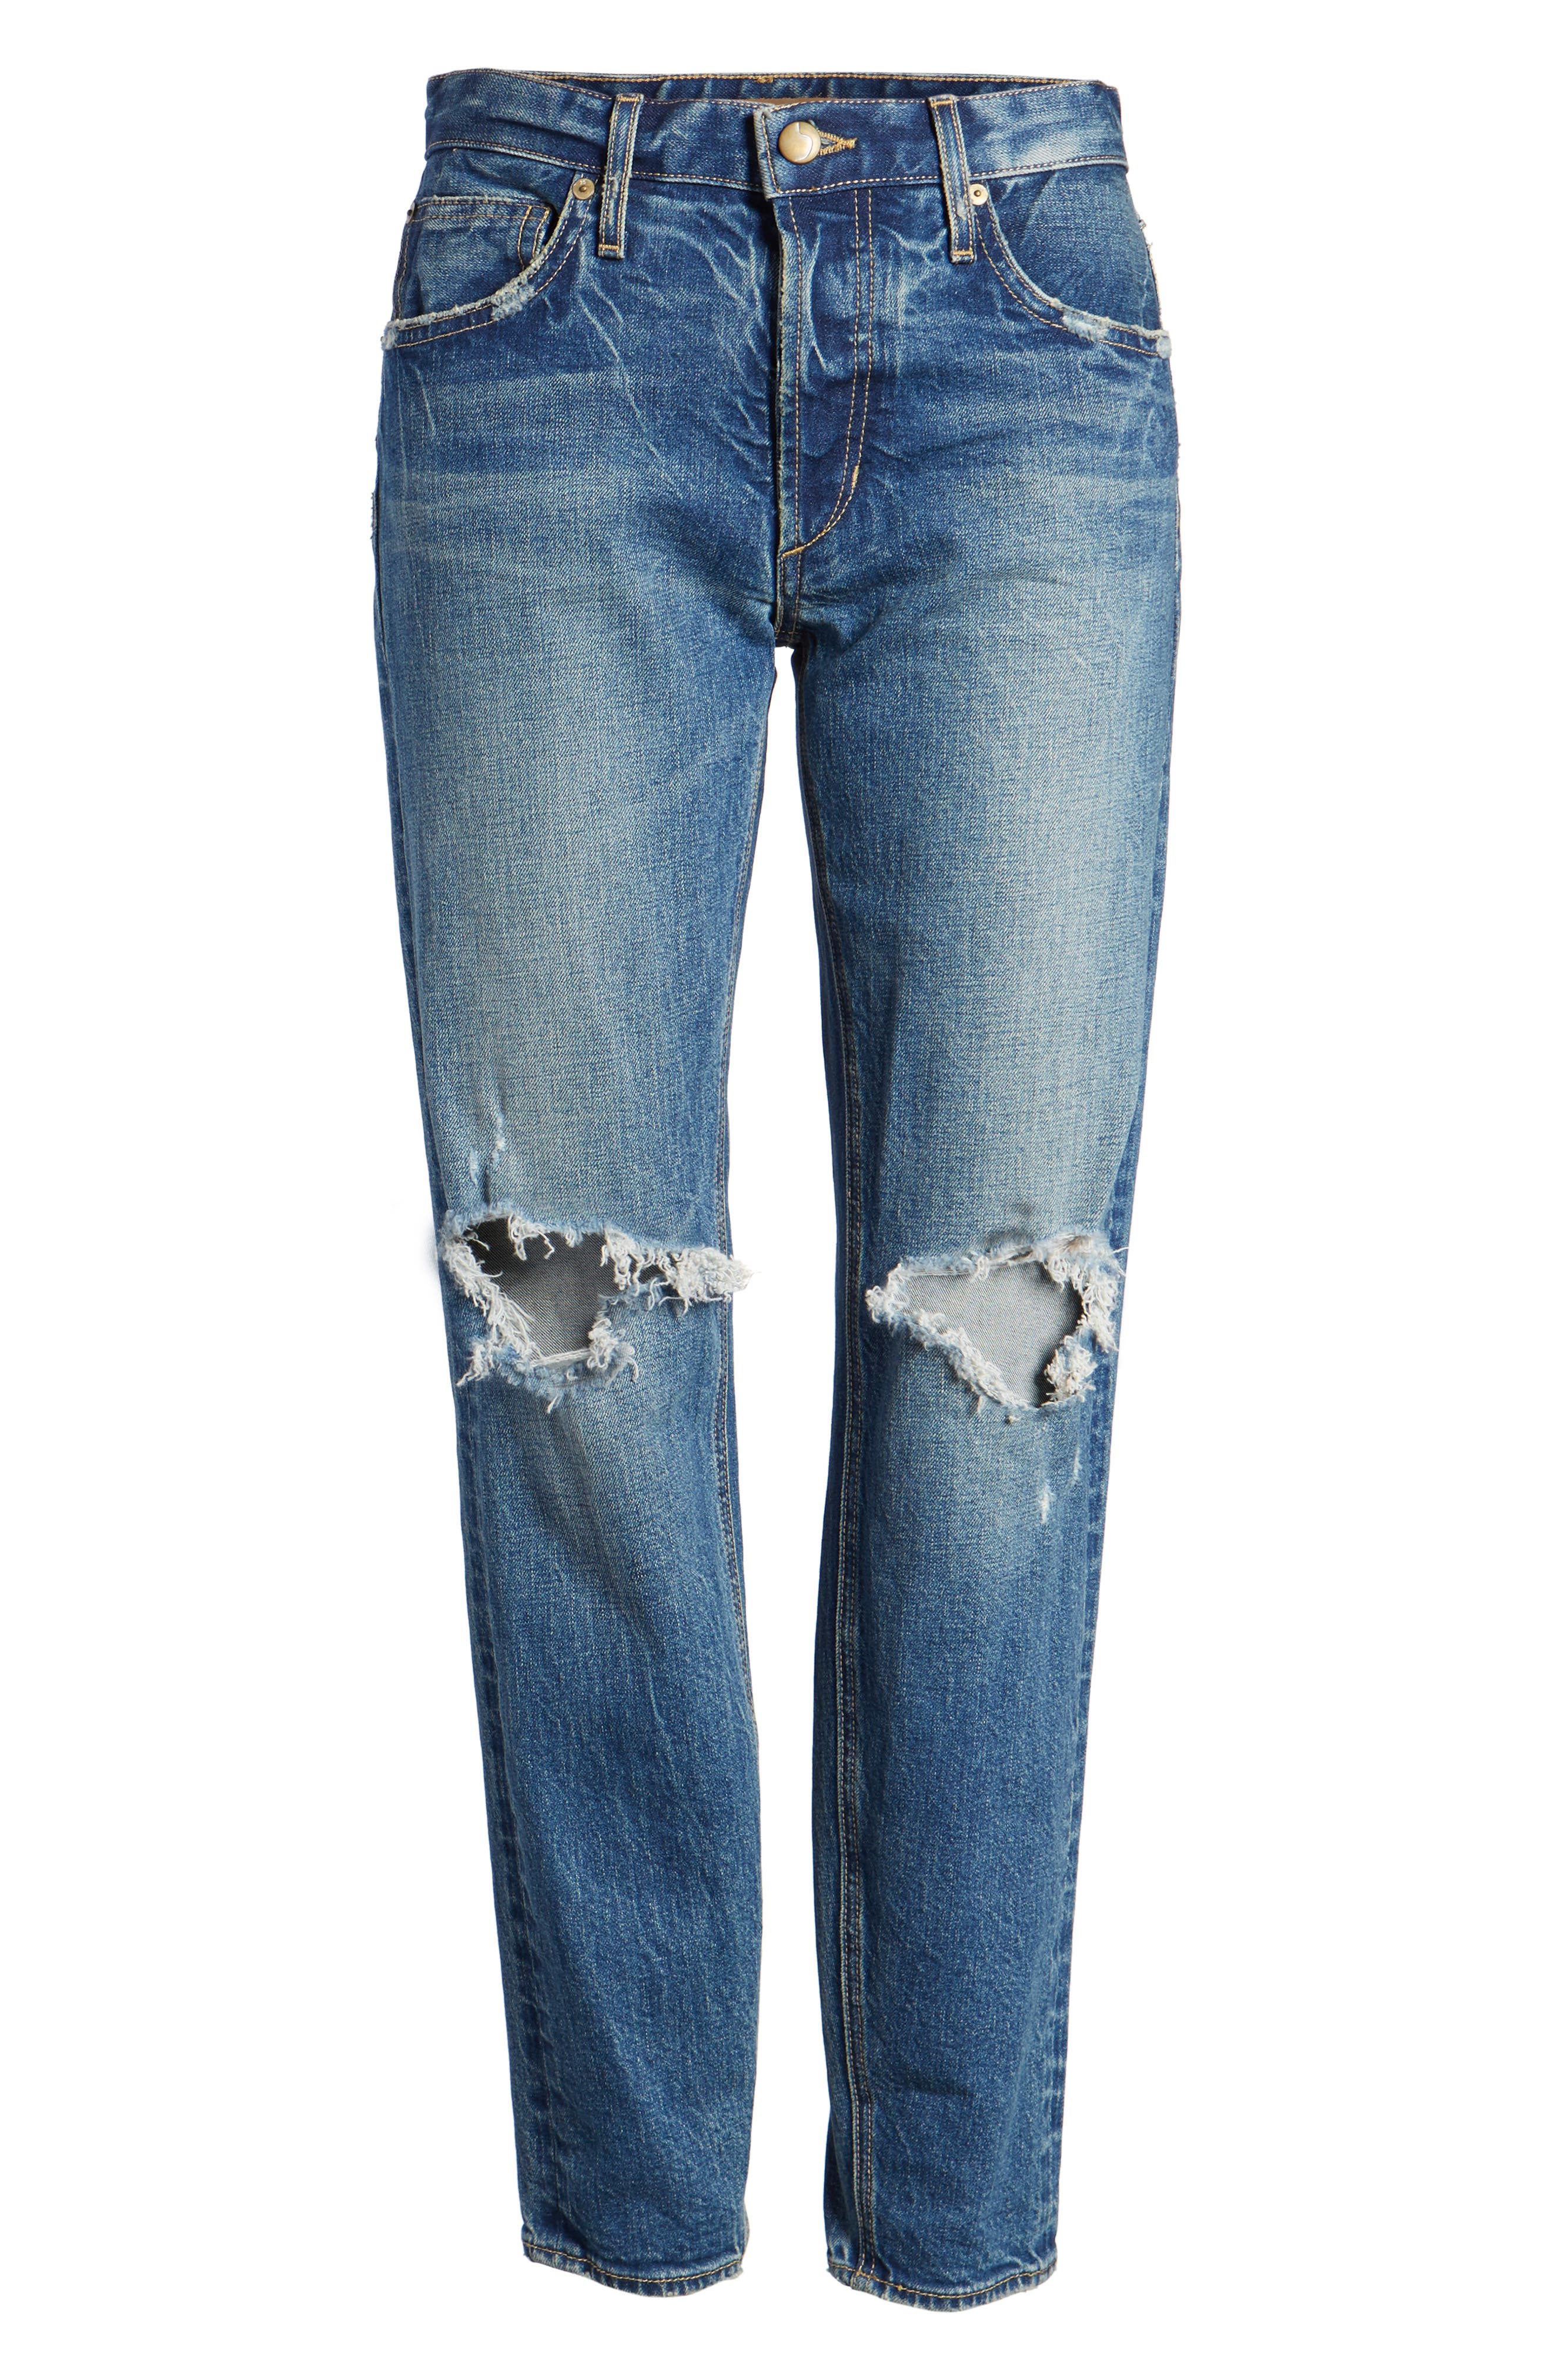 Vintage Icon Ankle Skinny Jeans,                             Alternate thumbnail 7, color,                             Bailee